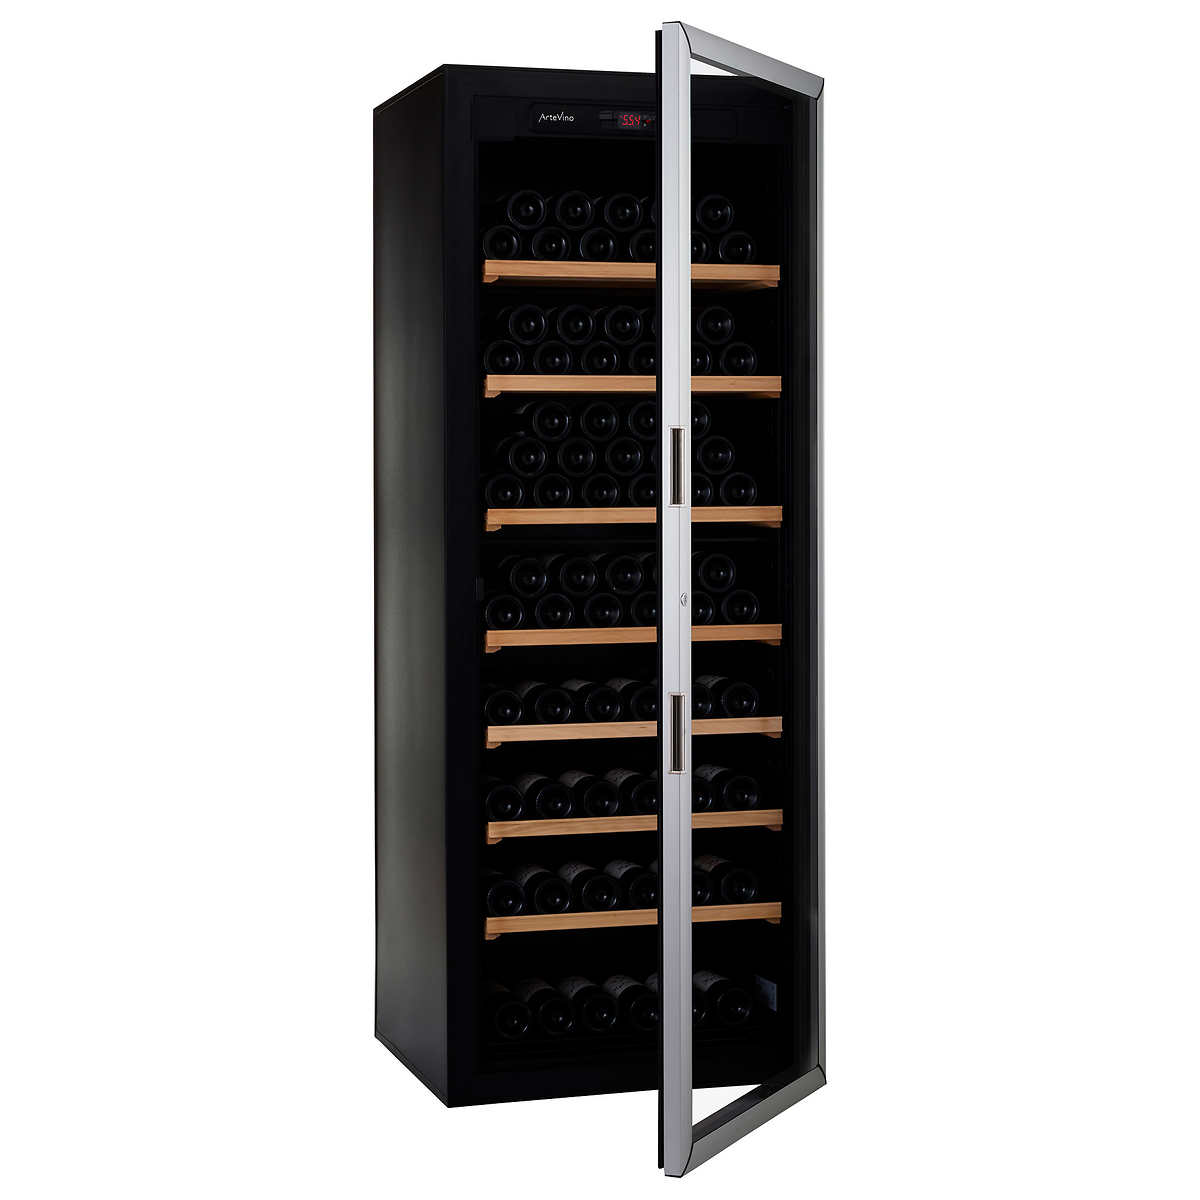 Artevino Wine Cellar Artevino Ii By Eurocave 200 Bottle Free Standing Single Zone Wine Cellar